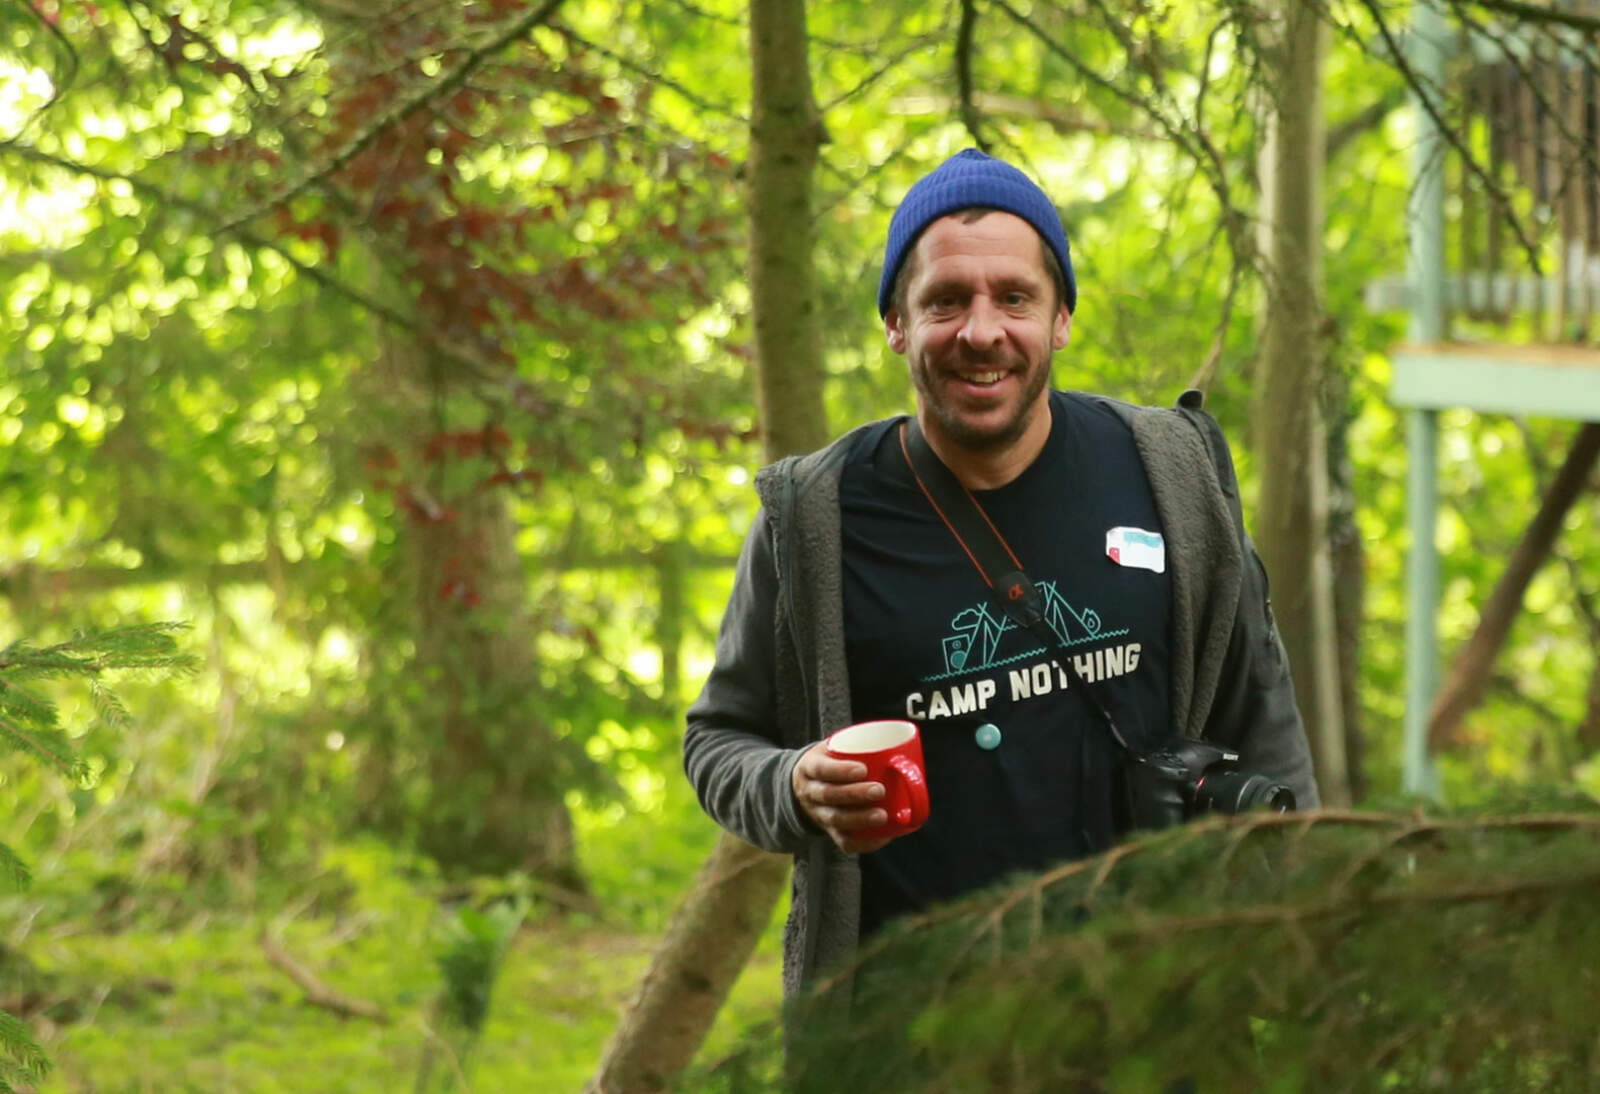 Dan from the Good for Nothing team walks through the woods with a cup of coffee.